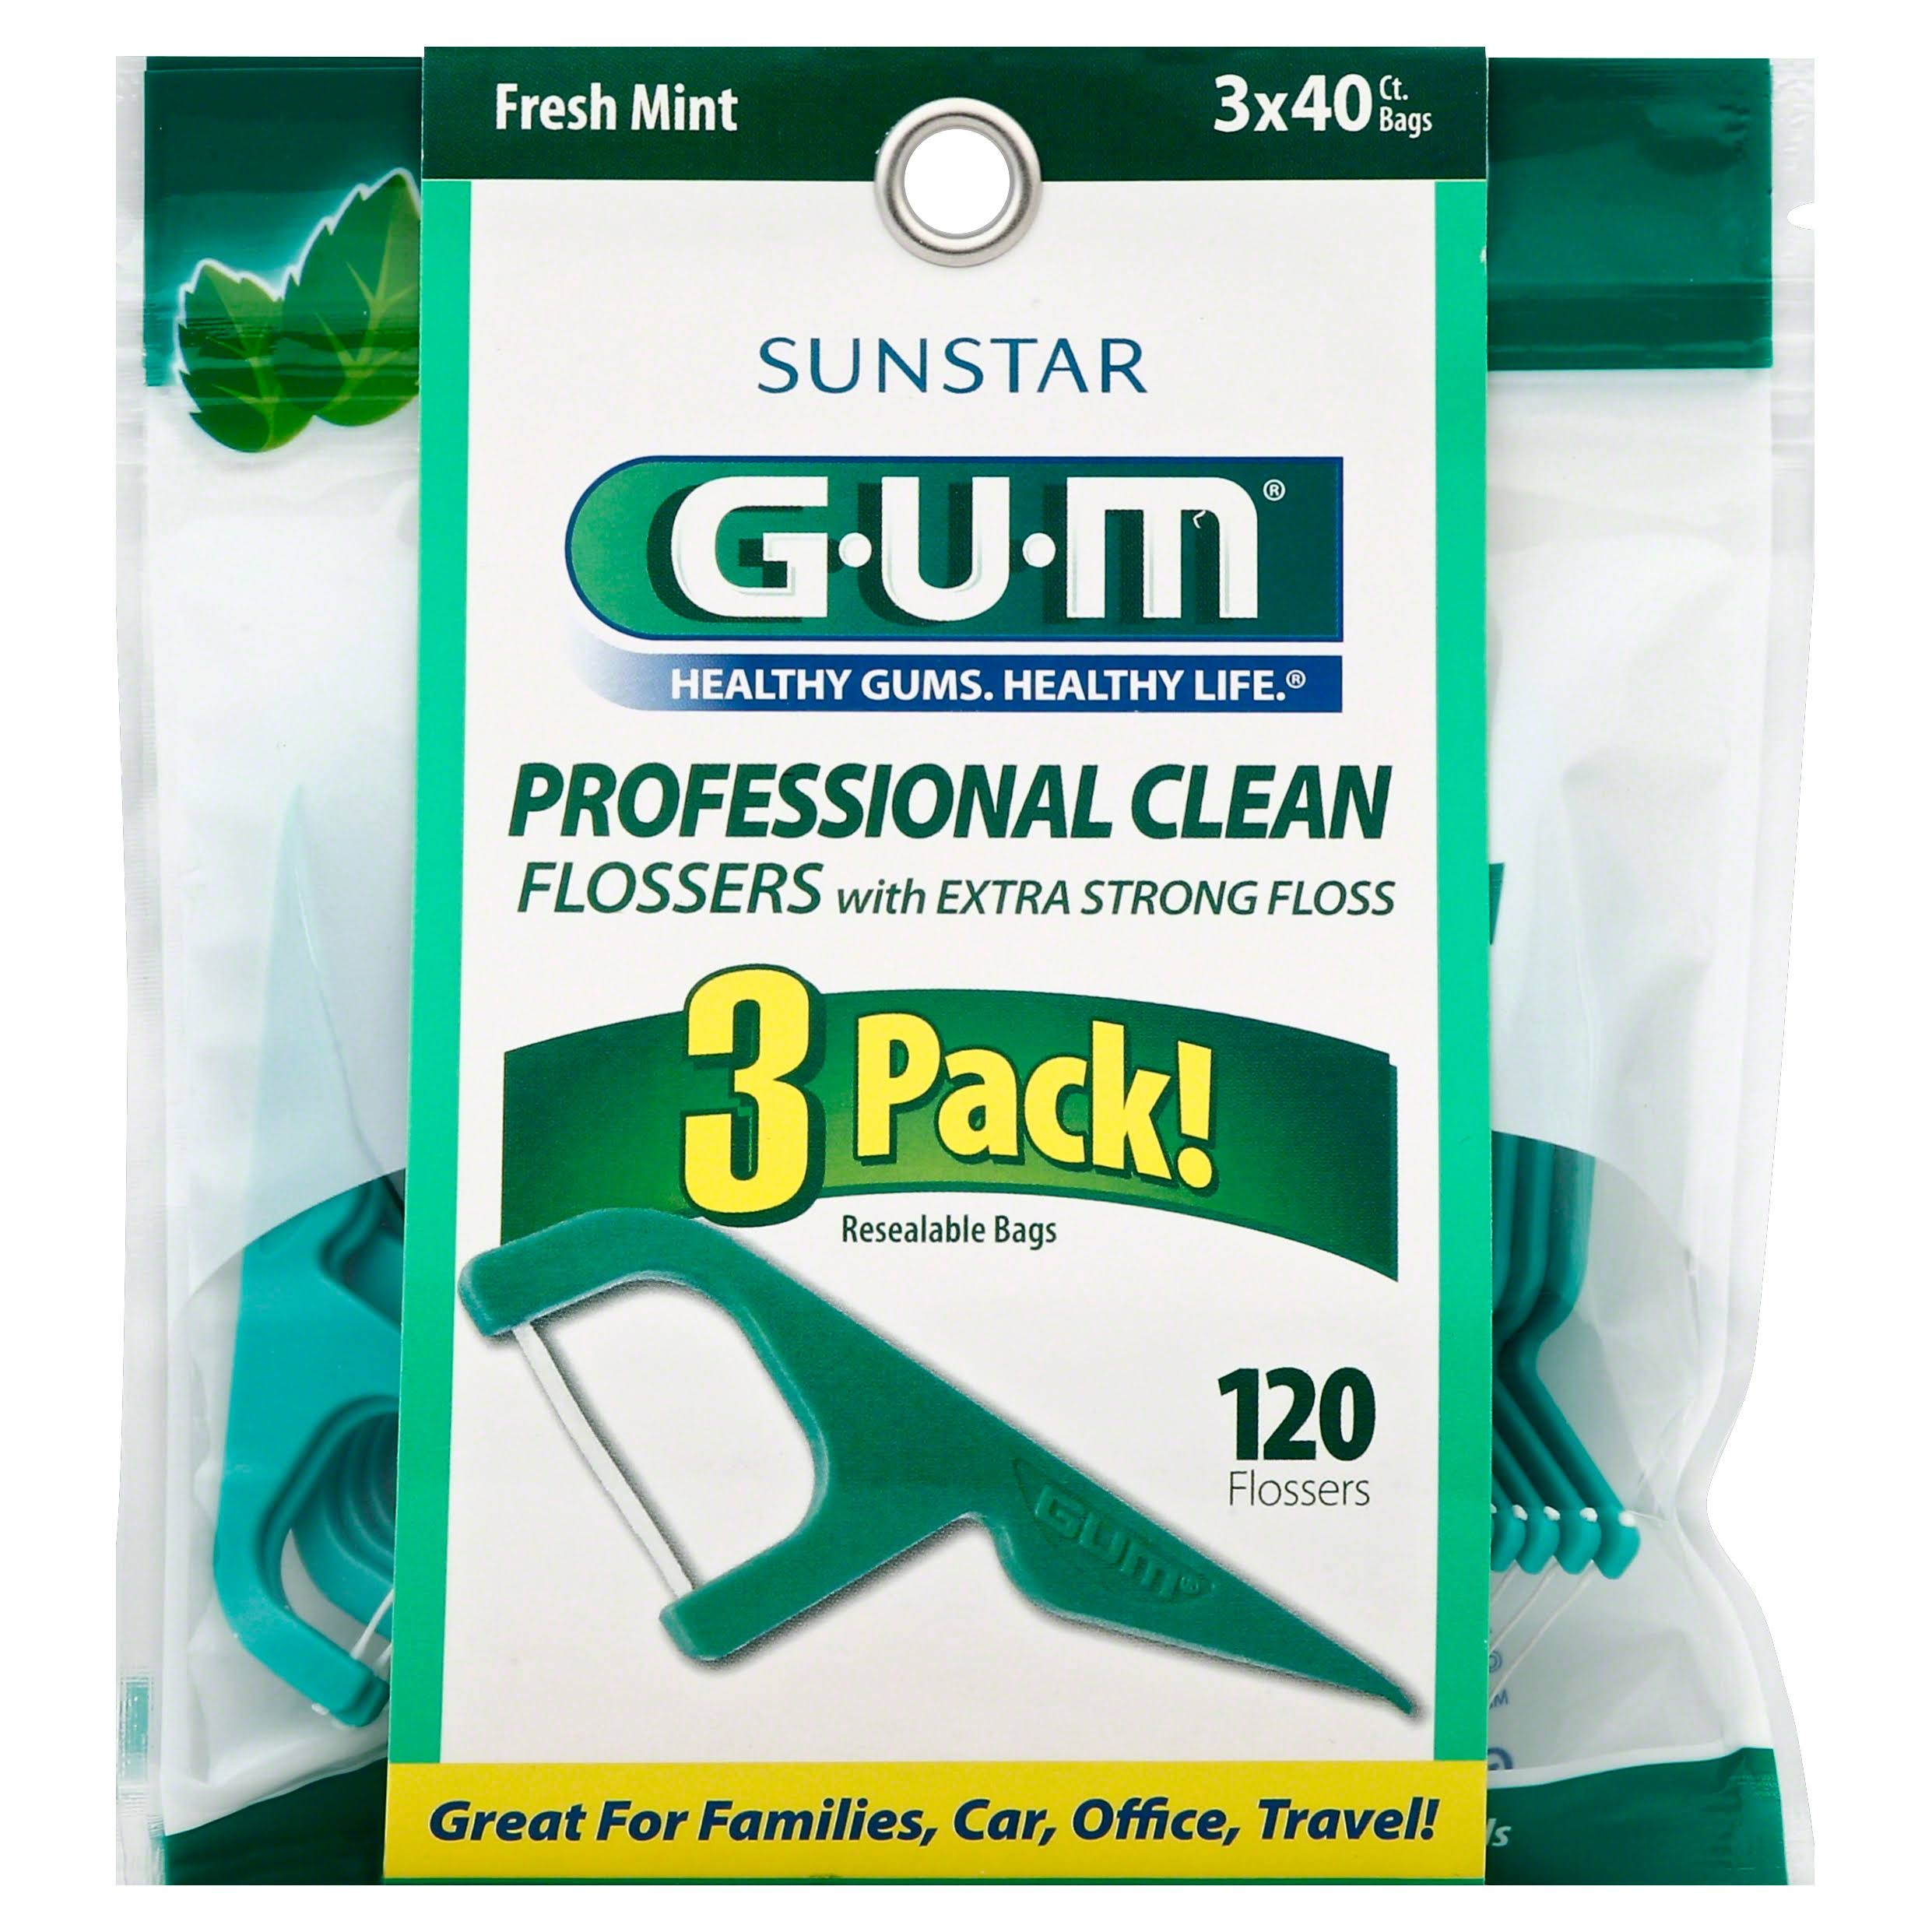 GUM Flossers, Professional Clean, Fresh Mint, 3 Pack! - 120 flossers